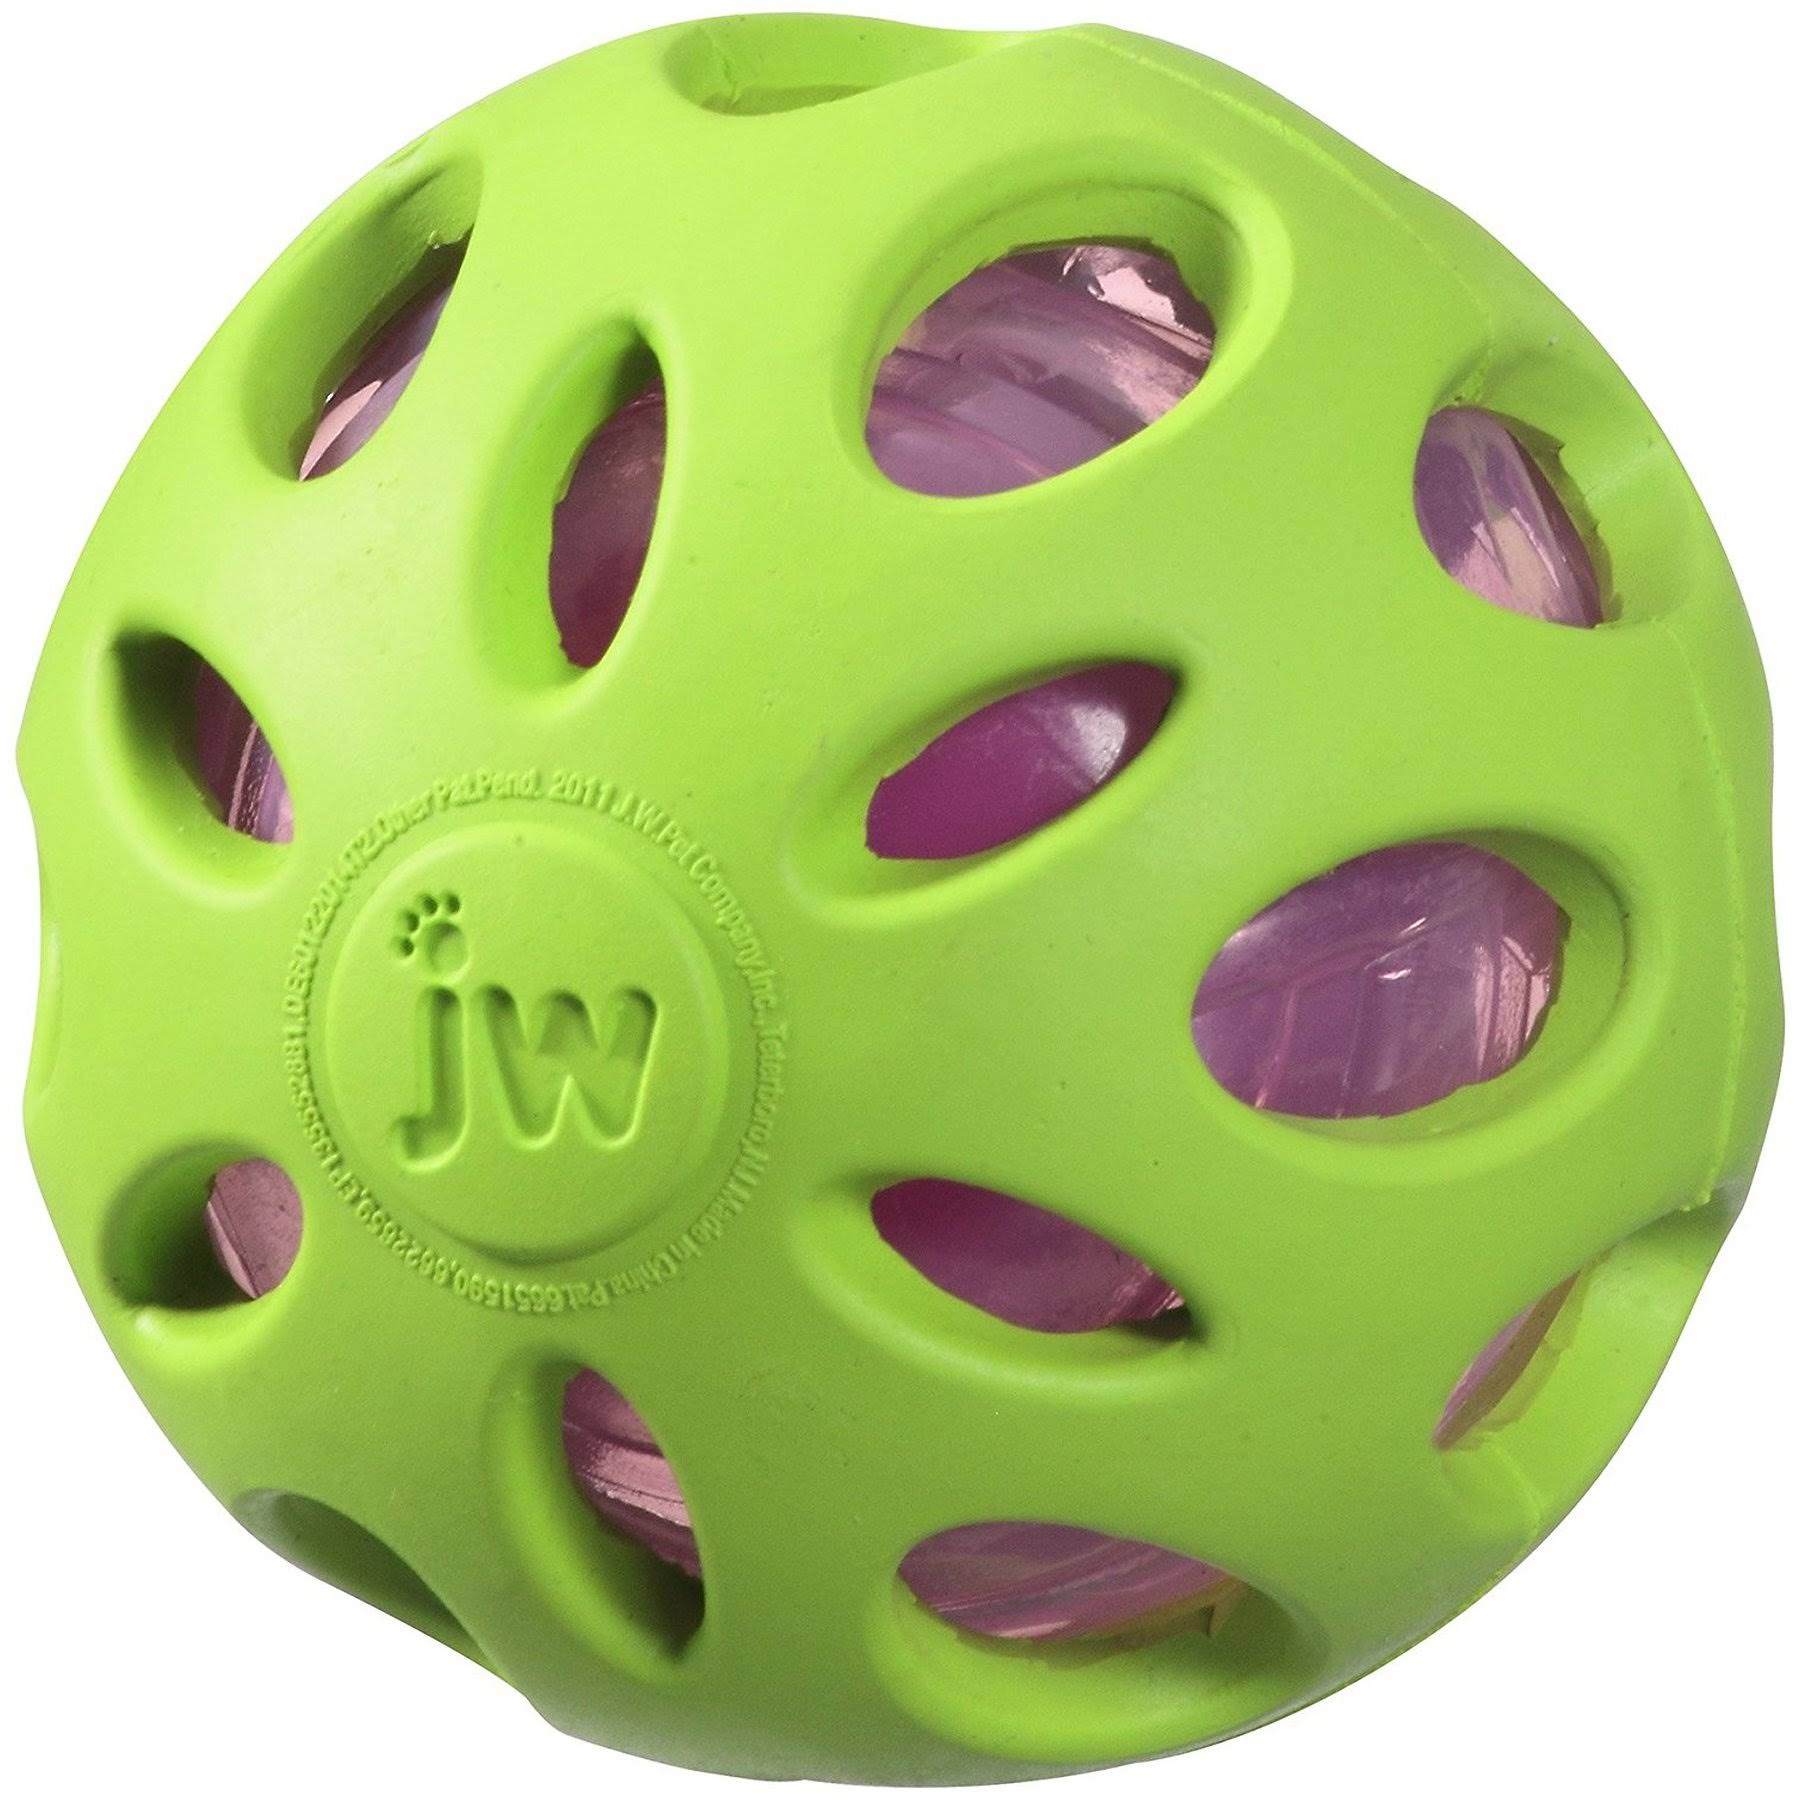 JW Pet Company Crackle Heads Crackle Ball Dog Toy - Colors Vary, Medium